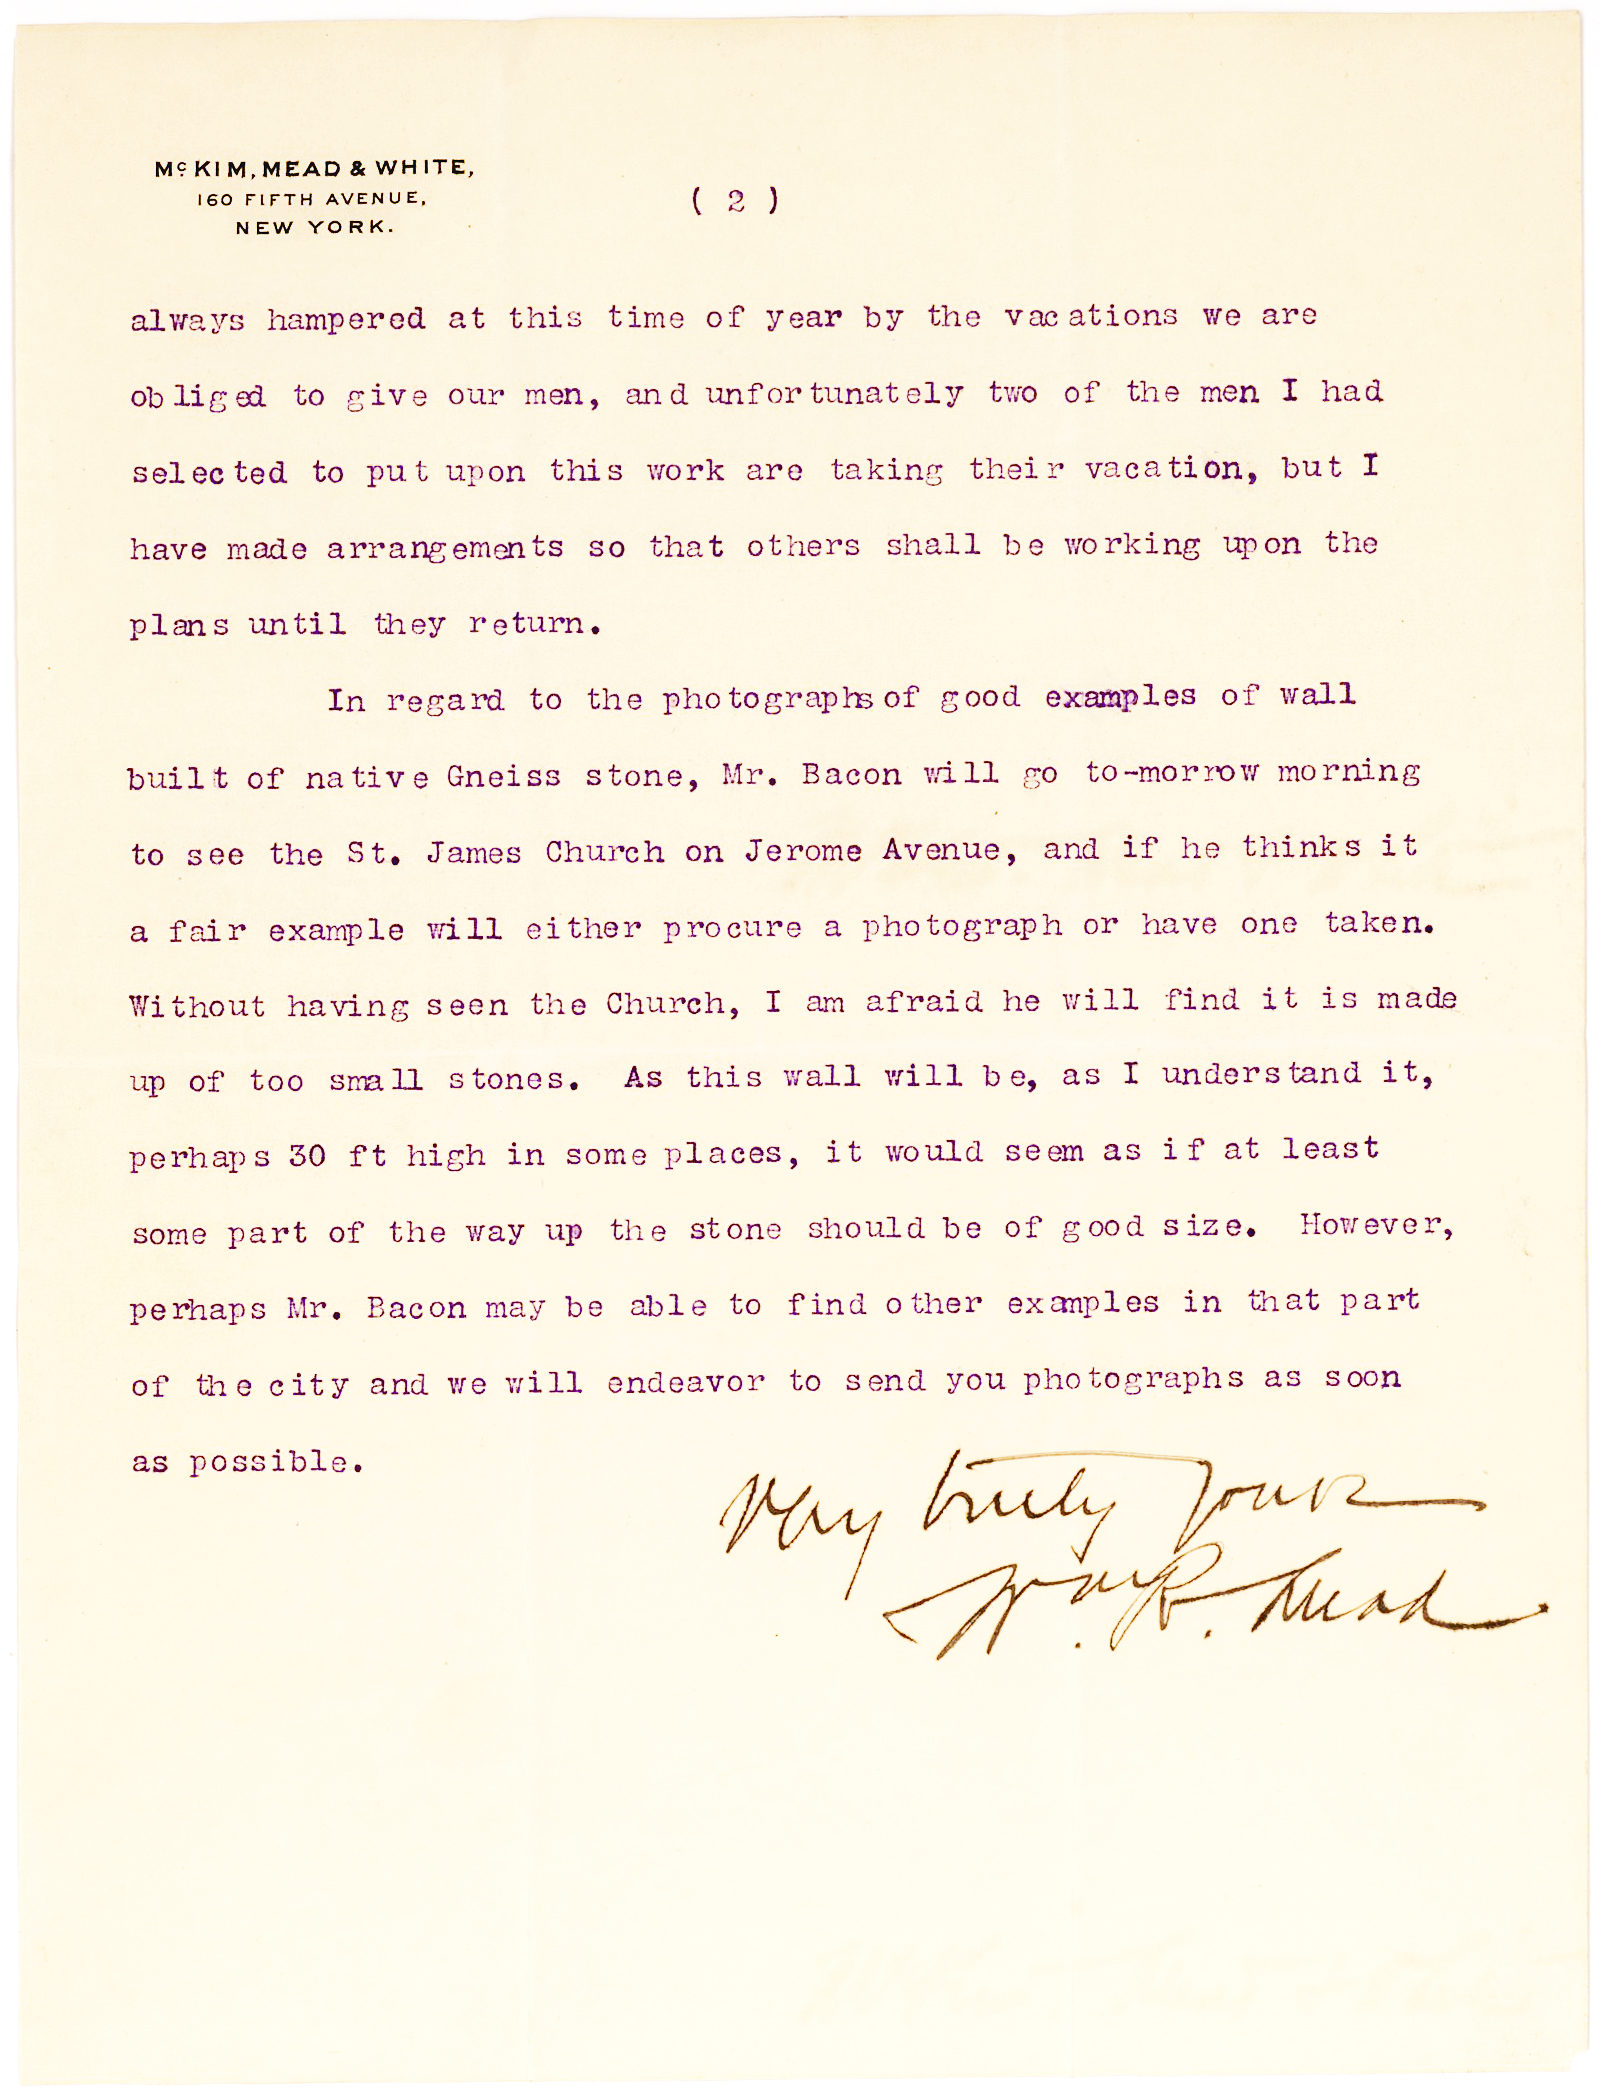 William R. Mead, American architect and principal of McKim, Mead & White, writes to the chancellor of New York University regarding the construction of the university's library